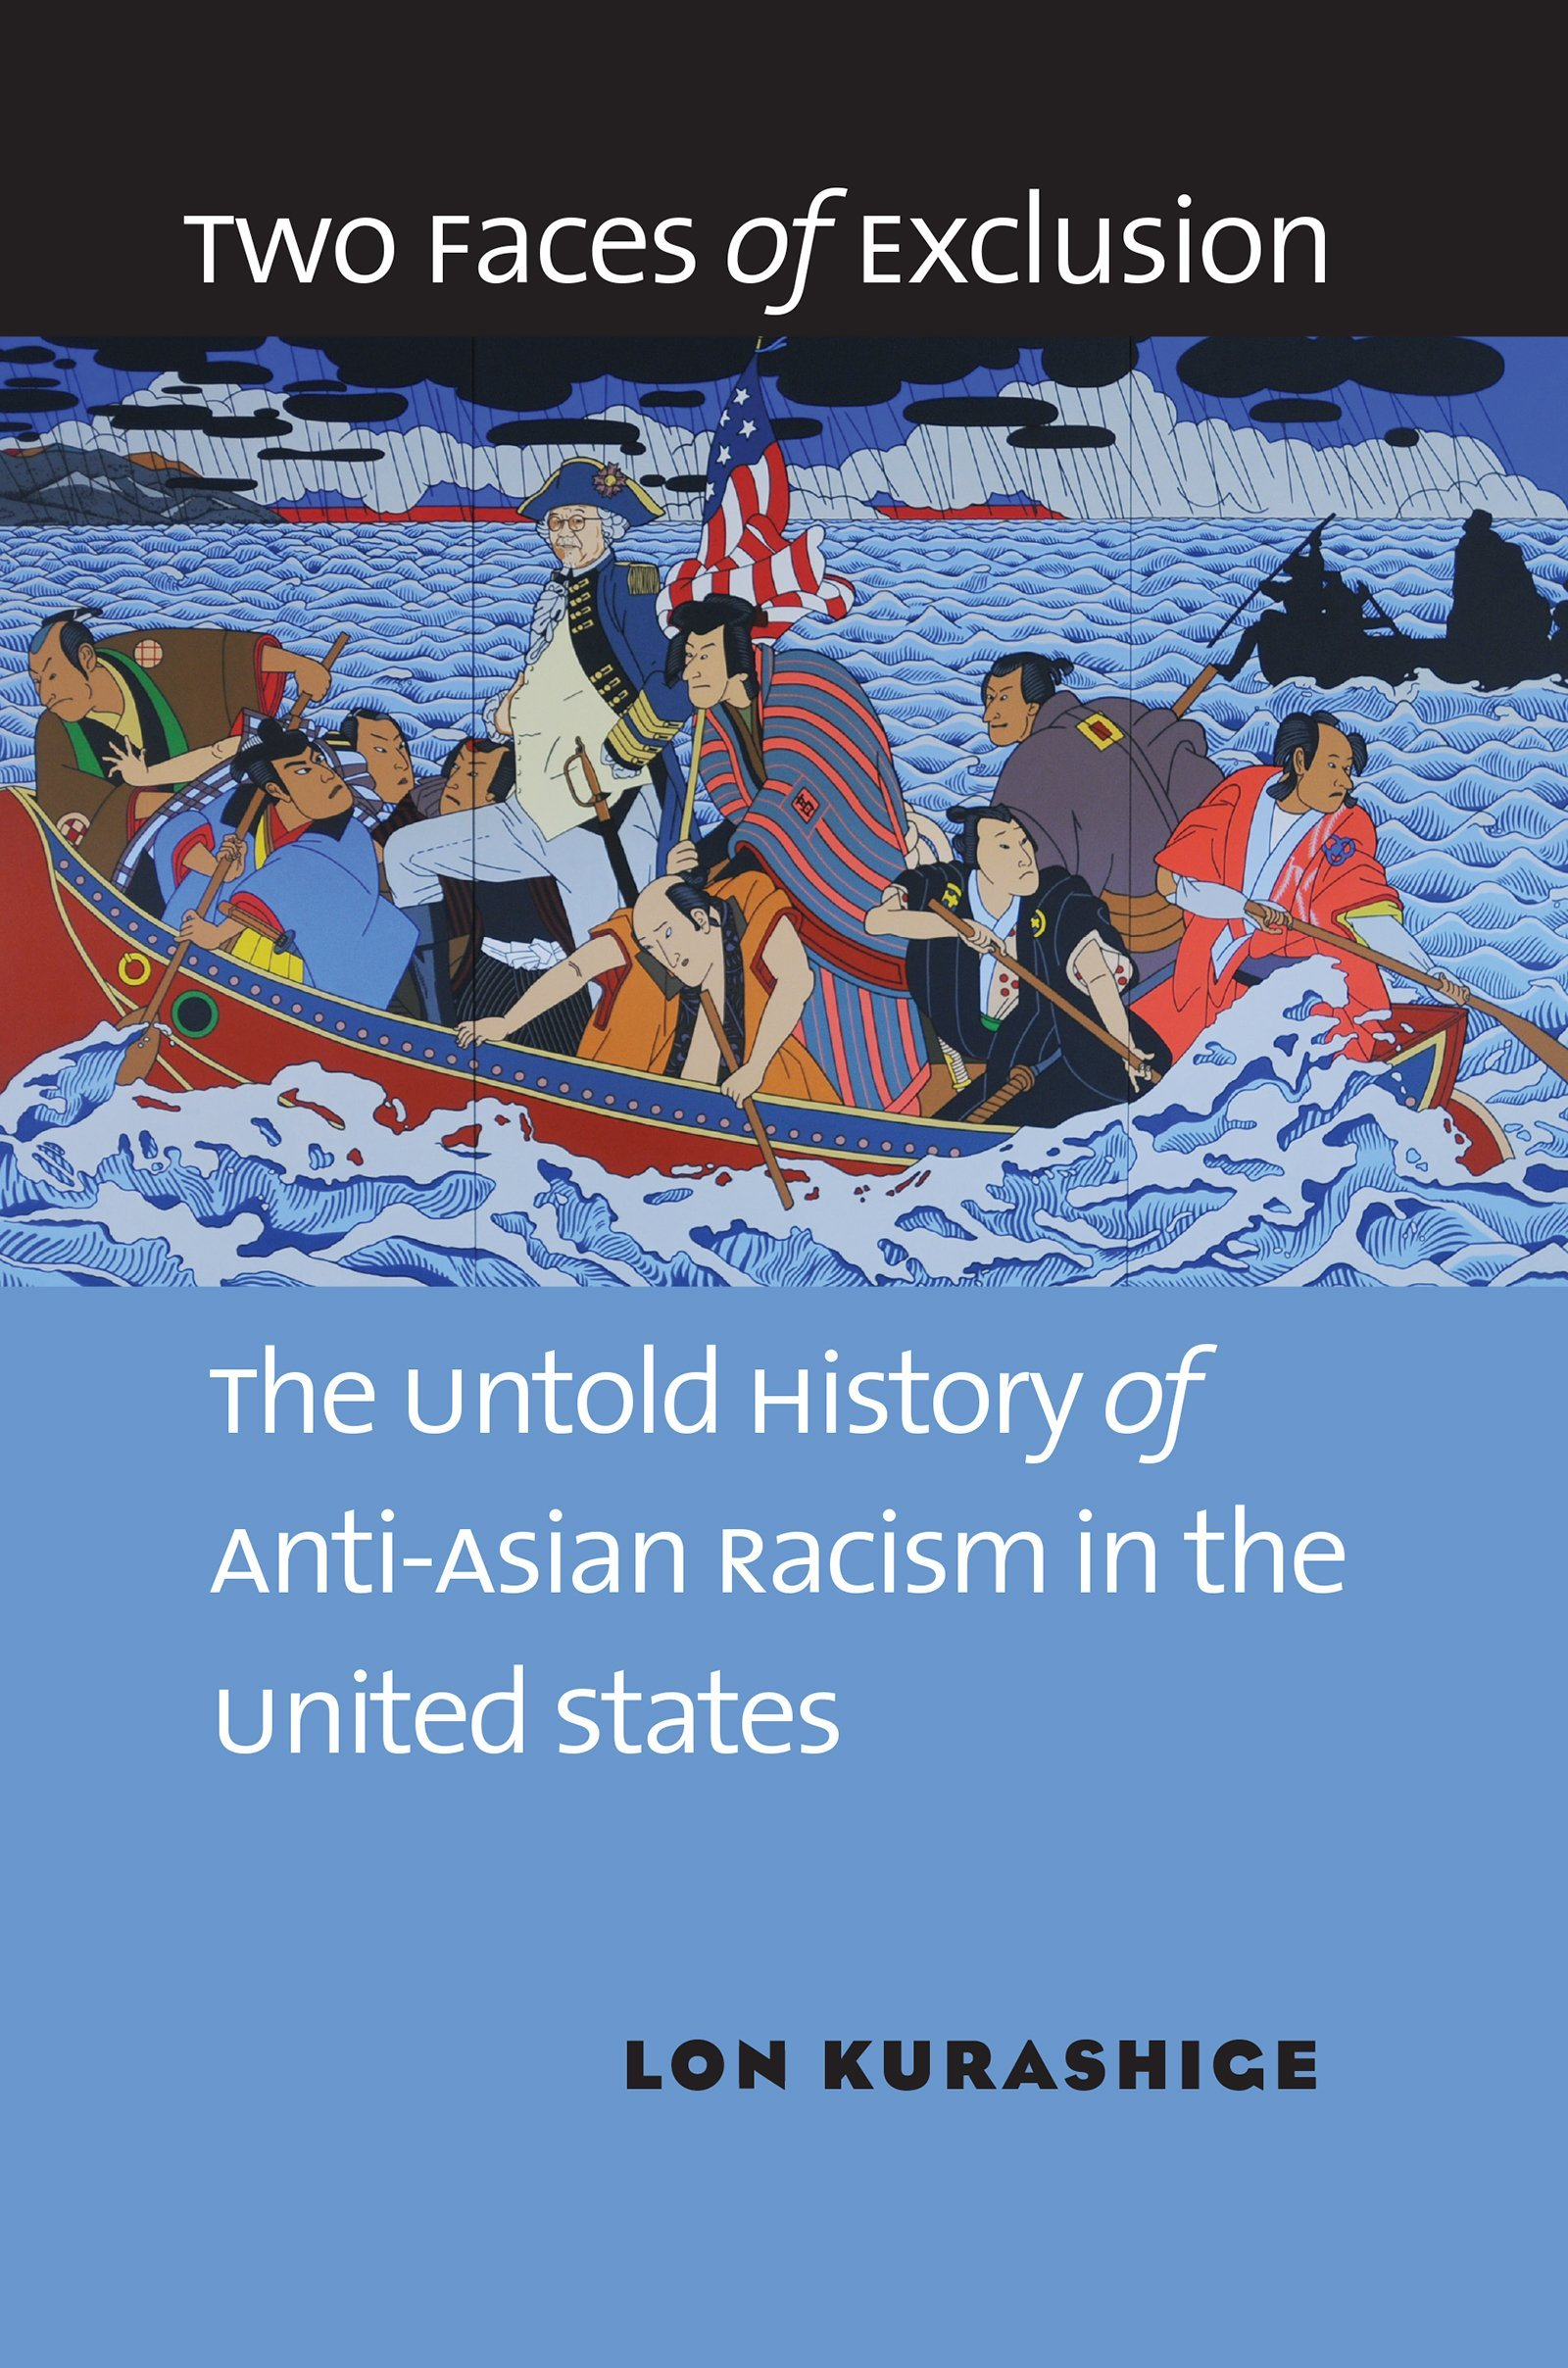 Two Faces of Exclusion: The Untold History of Anti-Asian Racism in the  United States | Social Science Research Council (SSRC) | Brooklyn, NY, USA